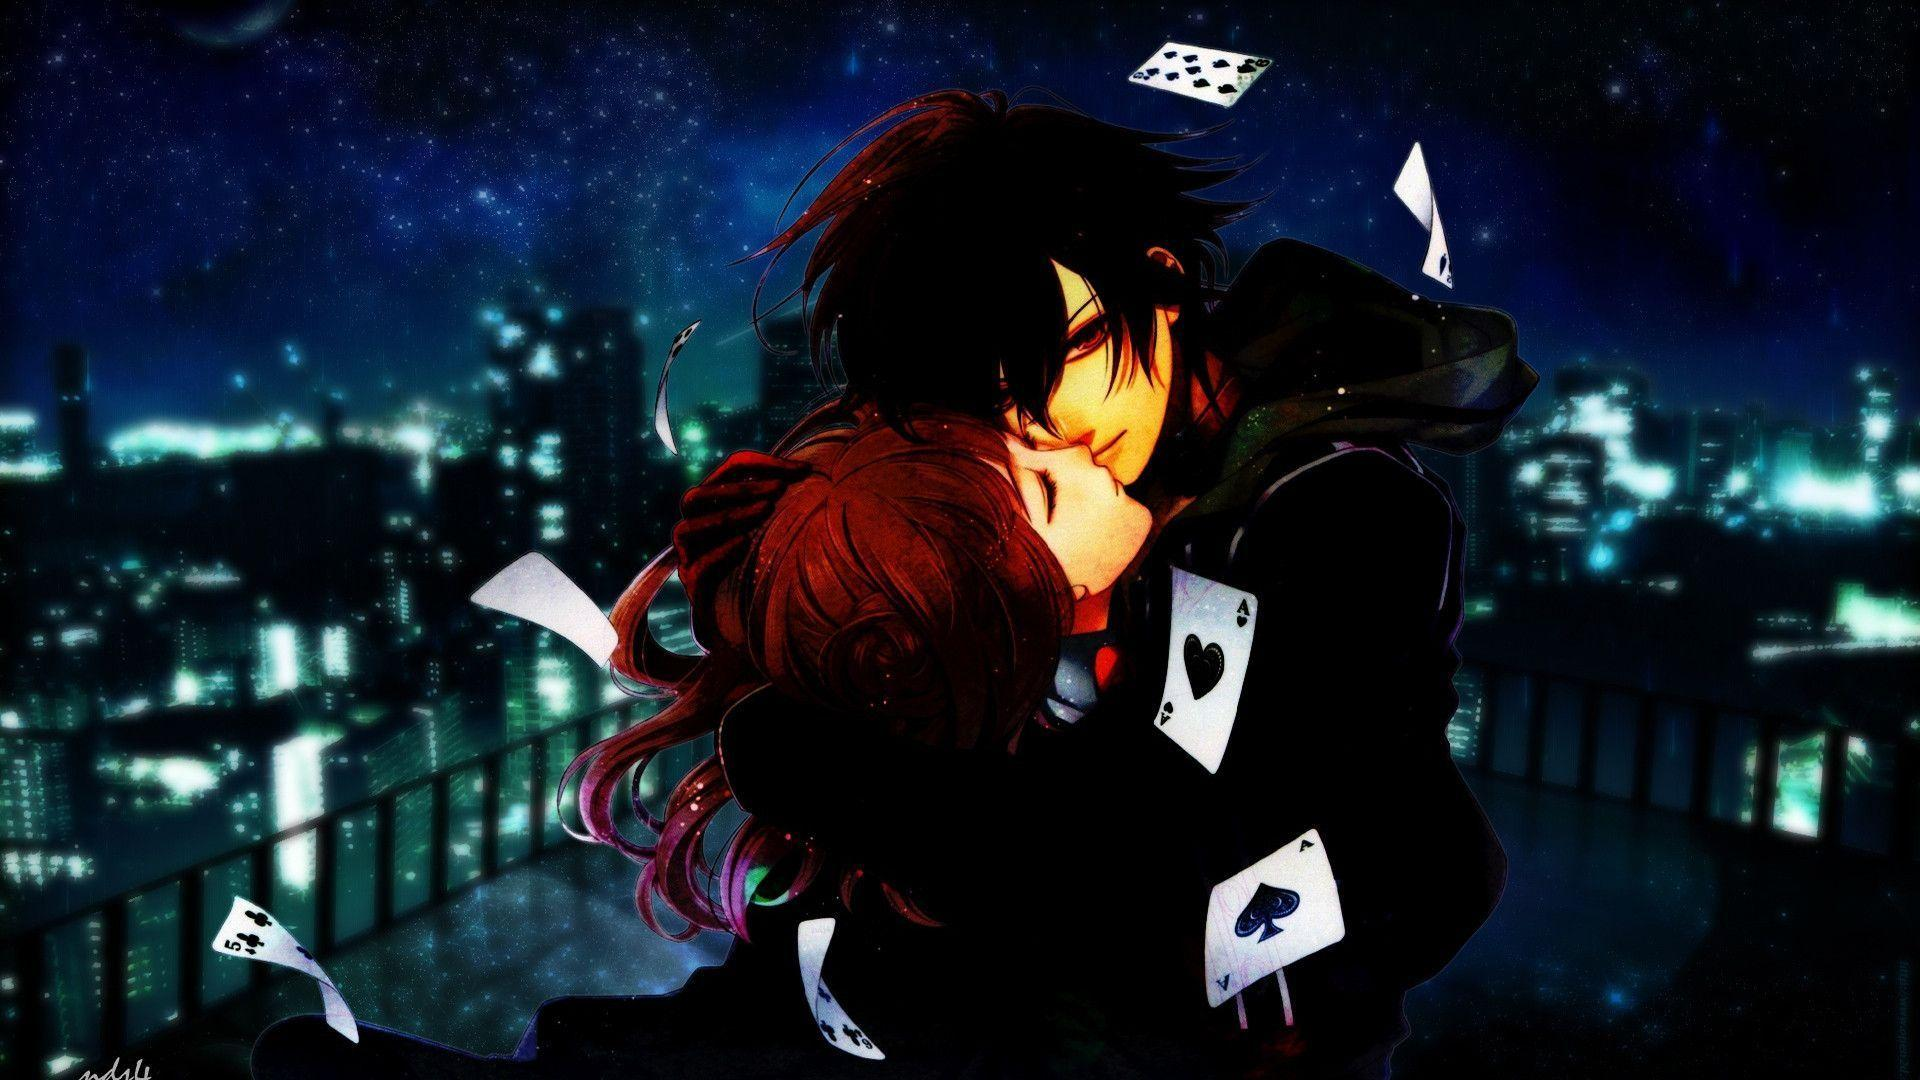 Animated Love couple Hd Wallpaper : Anime Love Wallpapers - Wallpaper cave